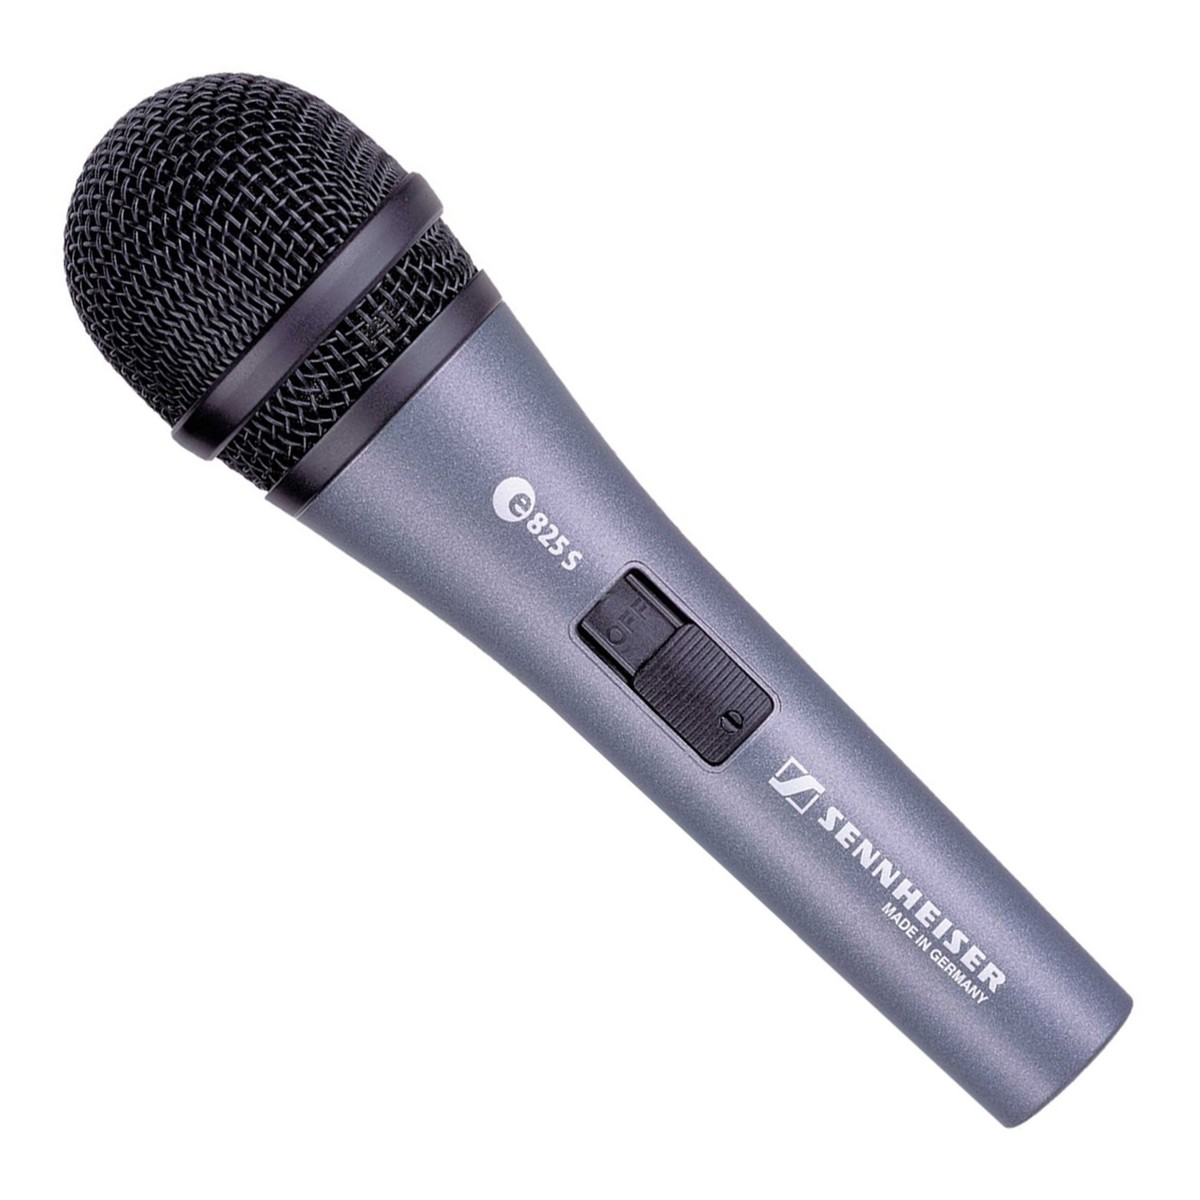 E825S Dynamic Cardioid Vocal Mic Inc Clip And Bag: Microphone